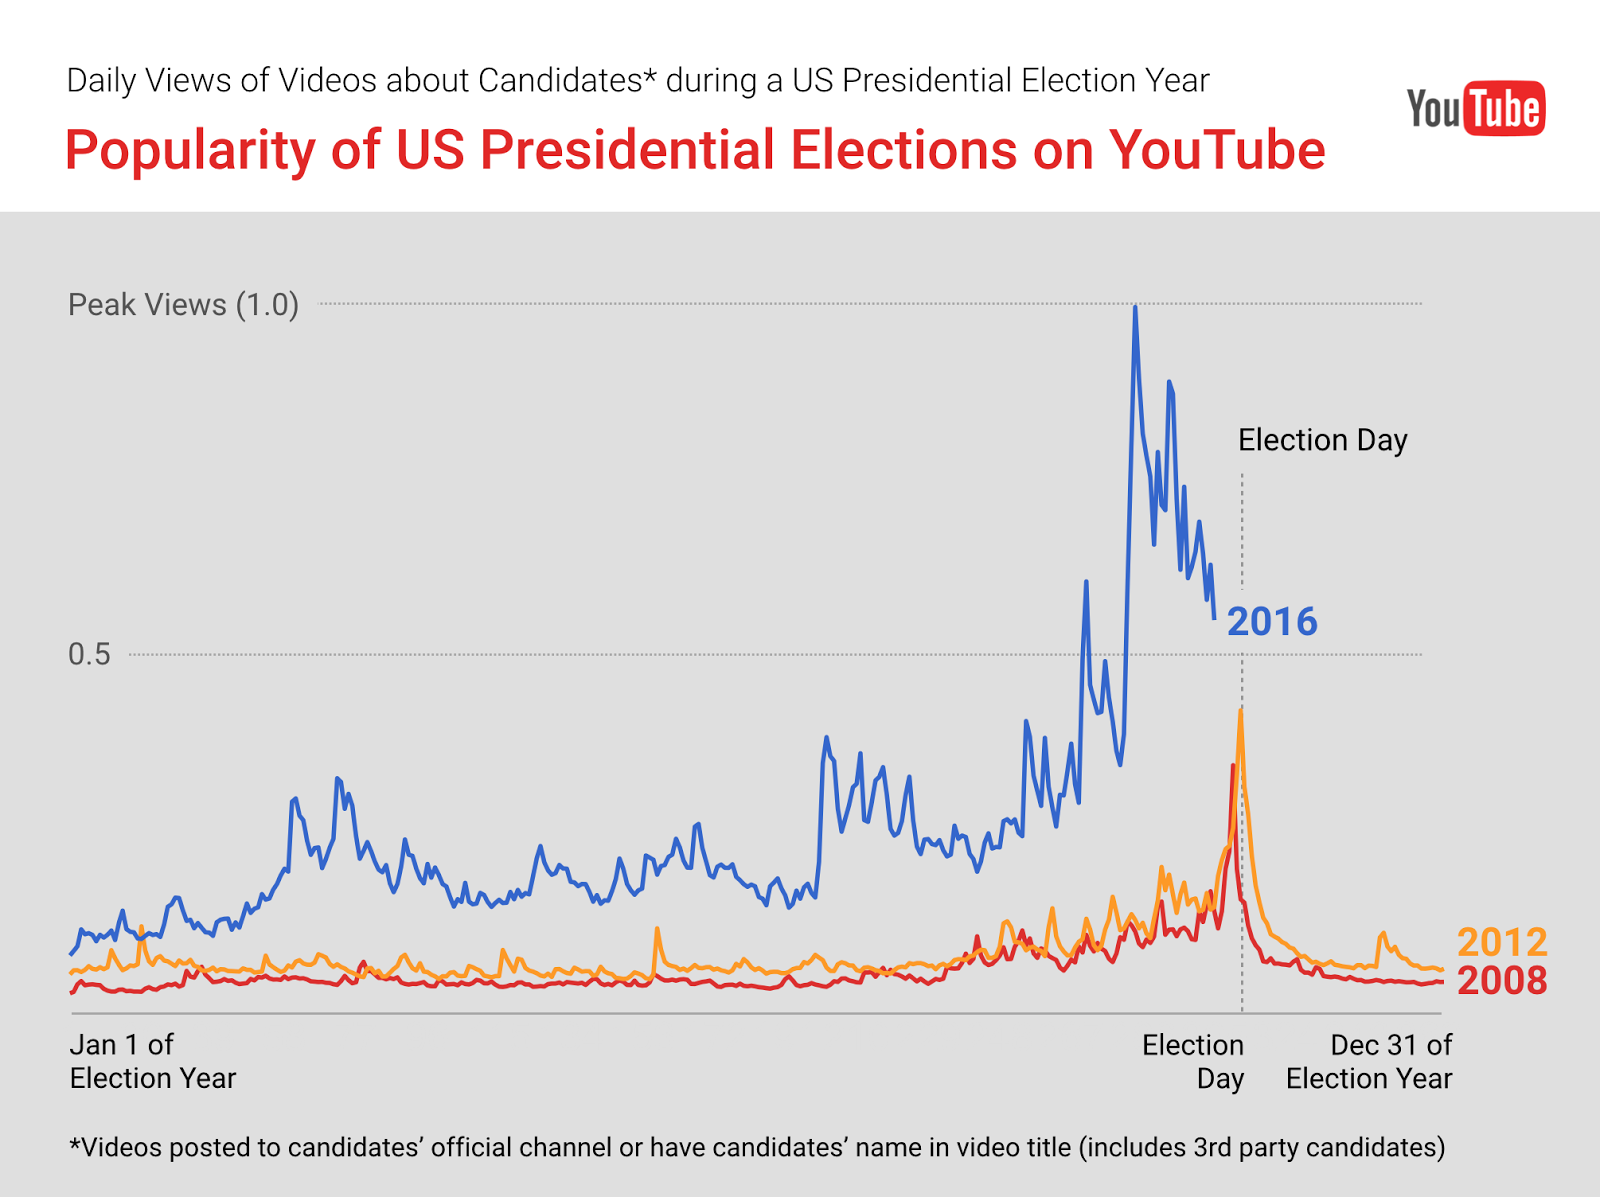 1979 Checkmate Wiring Diagram 8 Years Of Us Presidential Elections On Youtube How They Compare Since January 1 Overall Views In 2016 For Videos About Candidates Have Been 5x Larger Than 2012 Going Back Four More To The 2008 Election